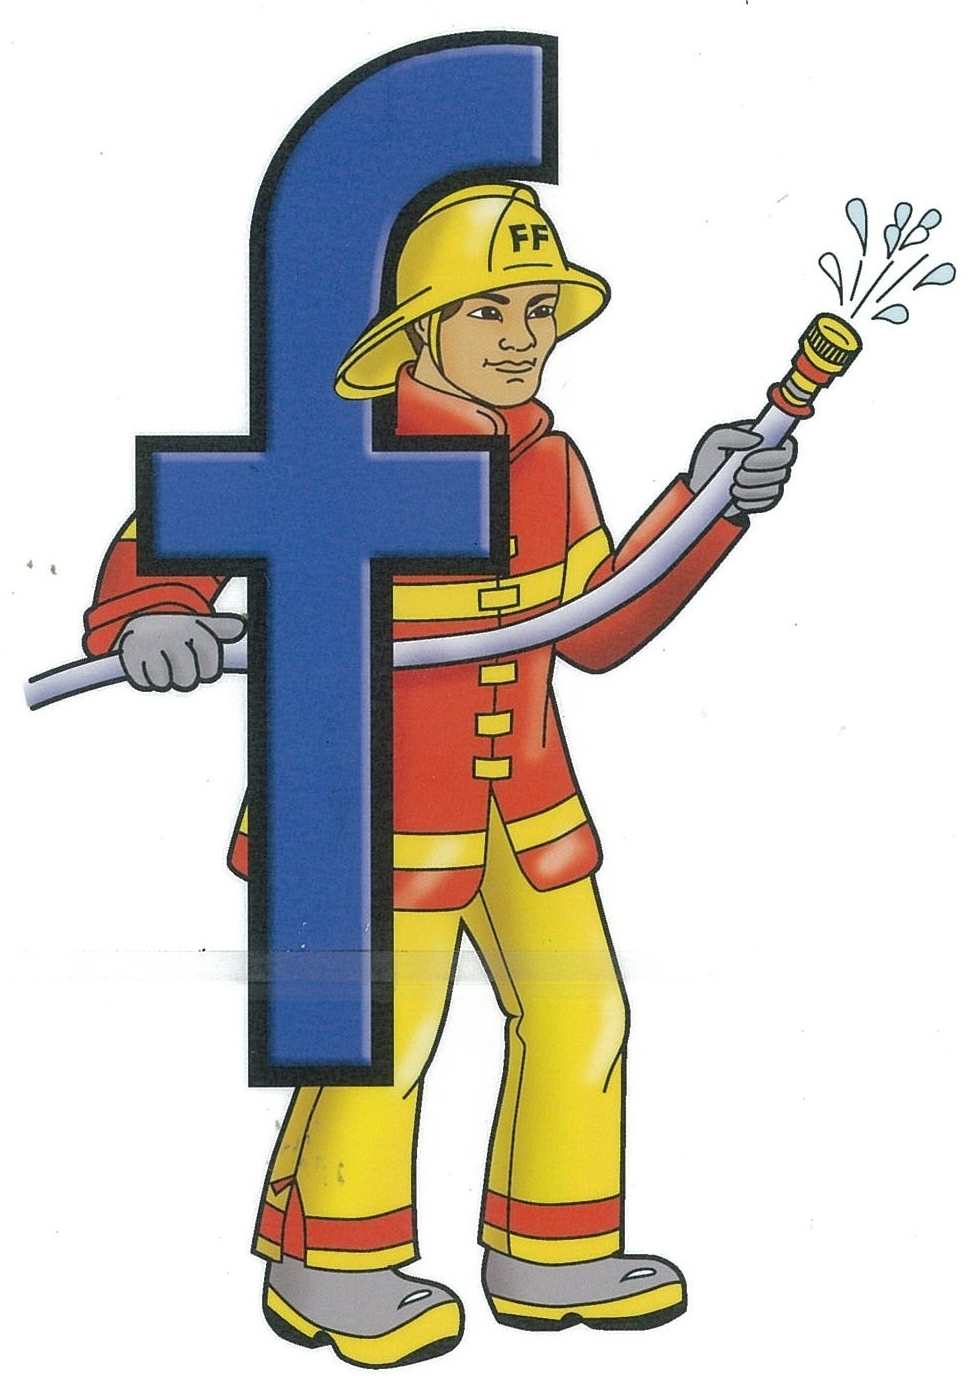 nostalgia corner ranking the letterland characters firefighter clip art images firefighter clipart baby